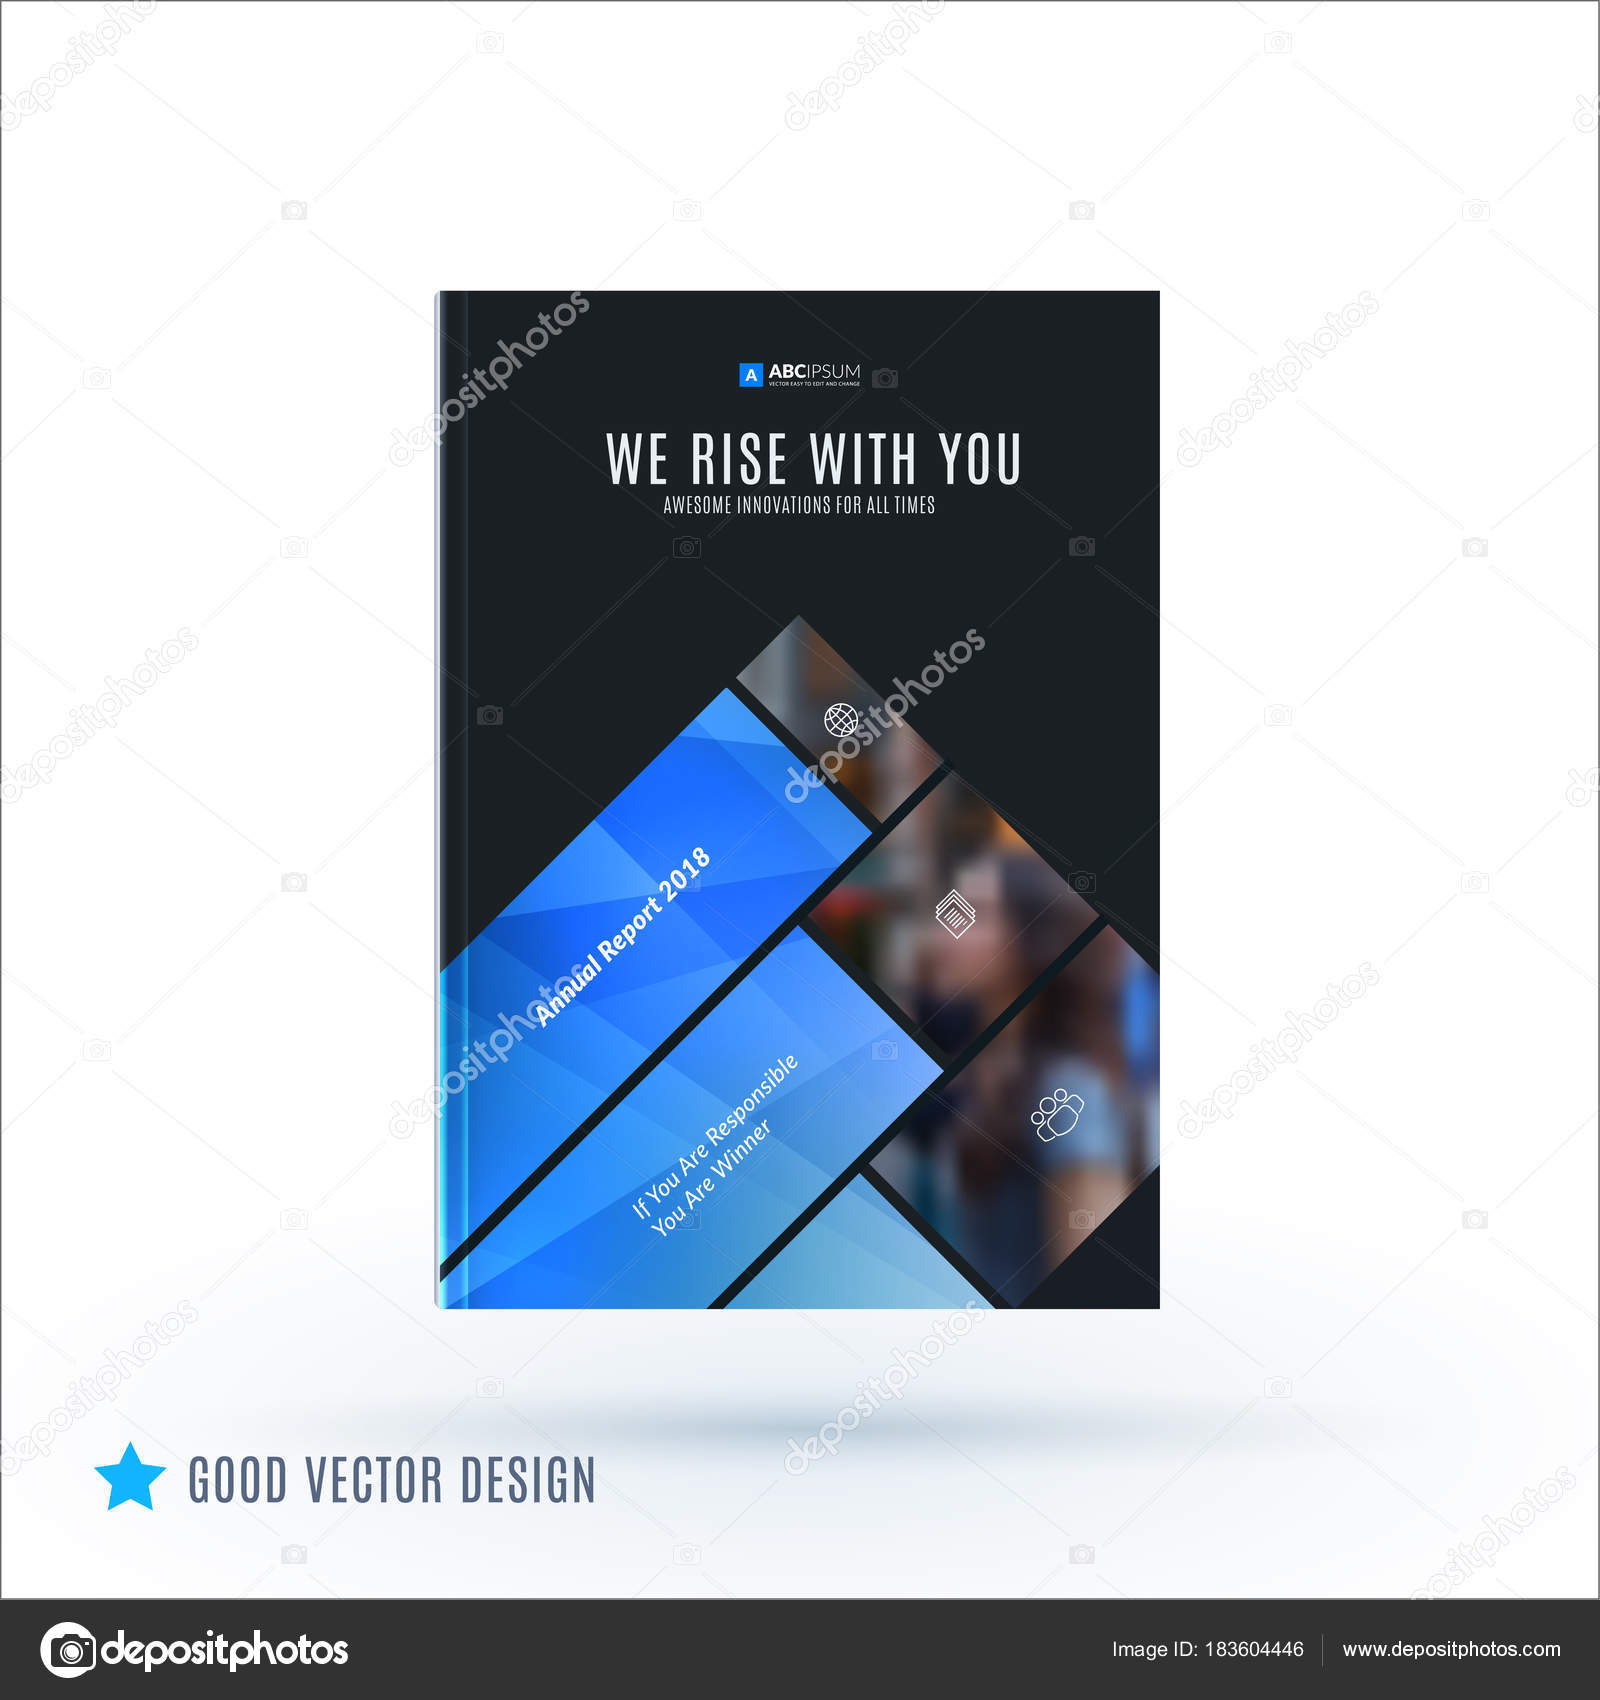 Design Of Brochure Abstract Annual Report Cover Modern Layout Flyer In A4 With Trendy Blue Elements Shapes For Business Printing Advertisement